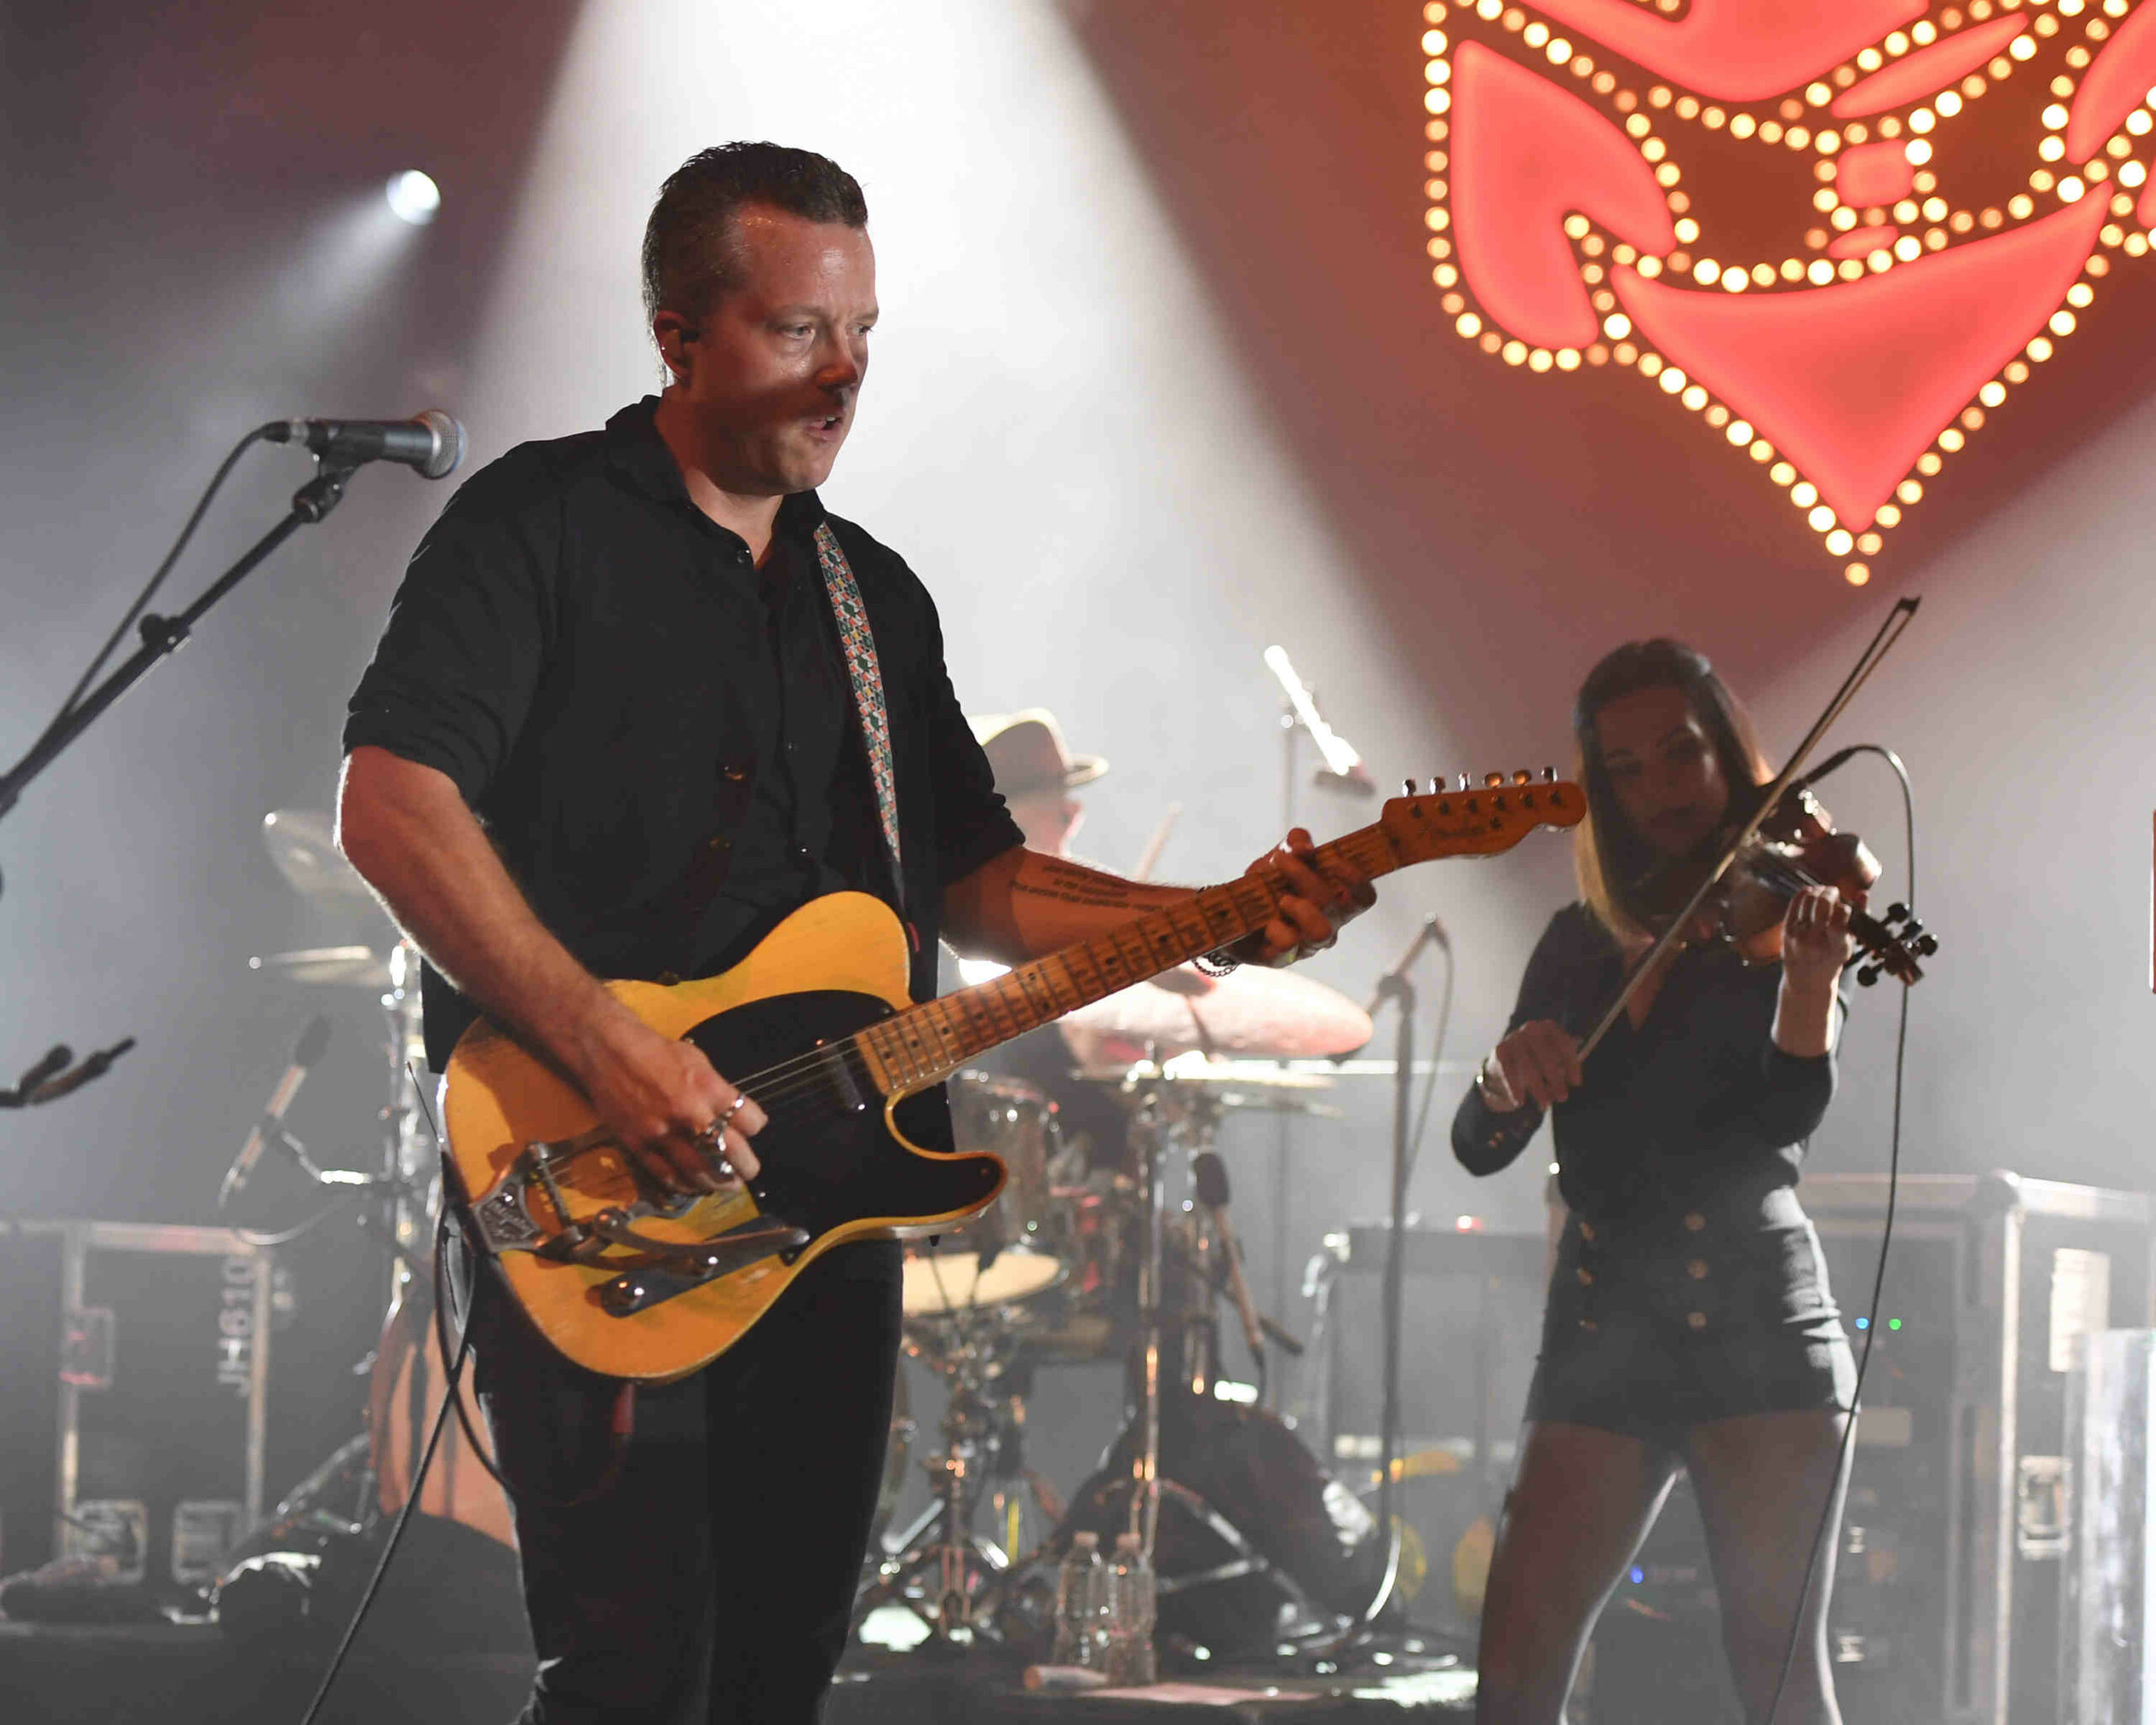 MIAMI BEACH, FL - JULY 21: Jason Isbell and Amanda Shires of The 400 Unit perform at the Fillmore on July 21, 2017 in Miami Beach, Florida. Credit Larry Marano © 2017